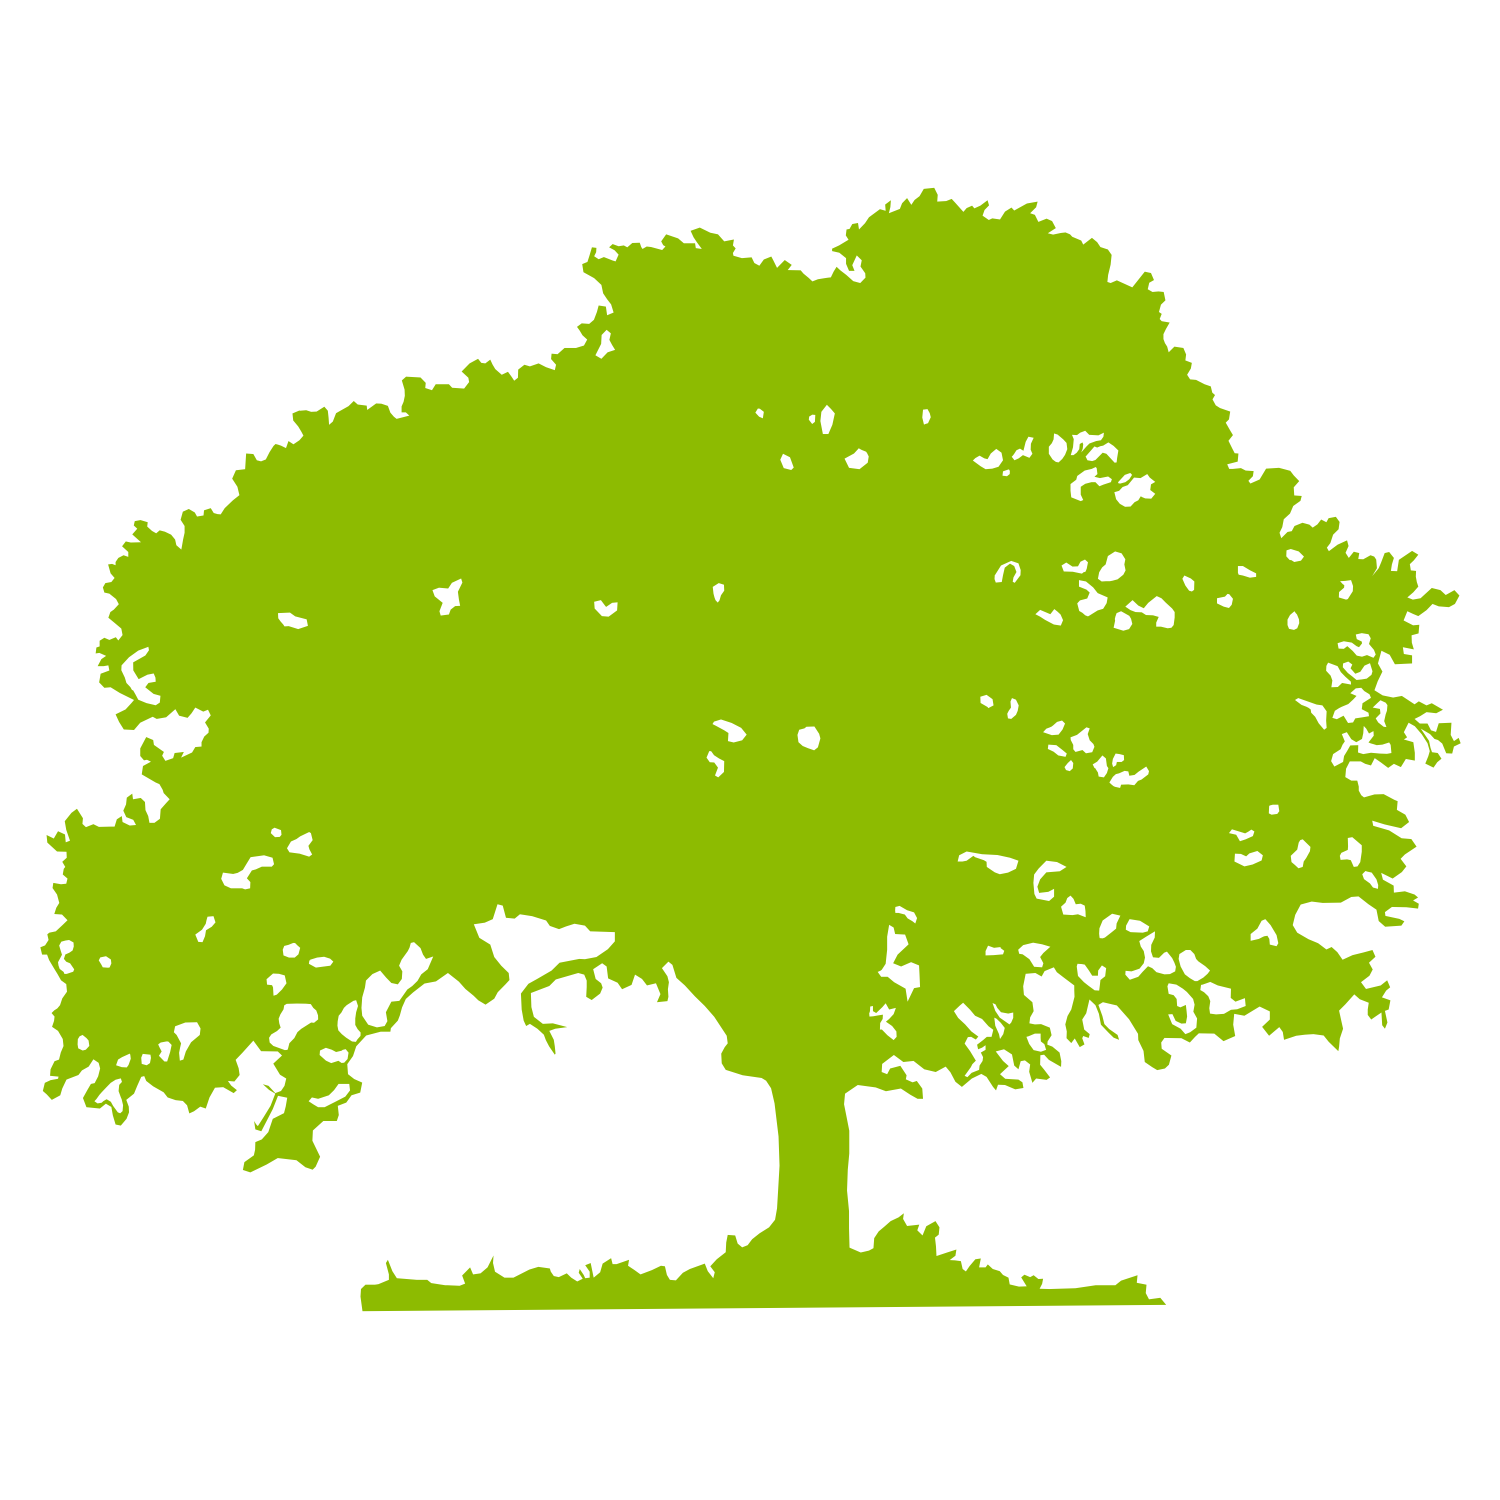 Green tree silhouette. Vector Illustration.